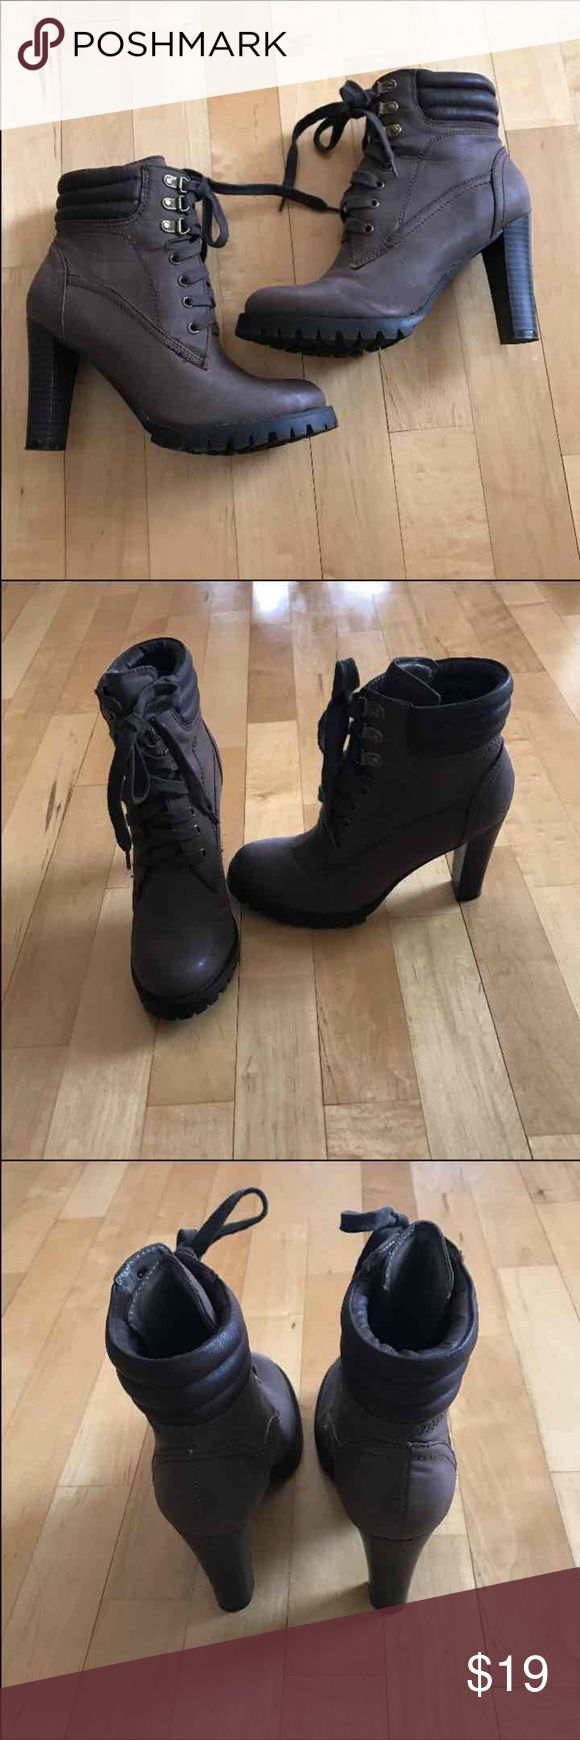 LACE UP BOOTS - (NWOT) Brown Laced Up Boots Size 6.5  with a 4inch heel. These are brand new and have never been worn they are by Two Lips.💋 #Combat Boots Bebe Yvette,  LF, Wallis, Steve Madden, Madden Girl, Timberland,  Jeffery Campbell Cors (FOR EXPOSURE) Two Lips Shoes Ankle Boots & Booties